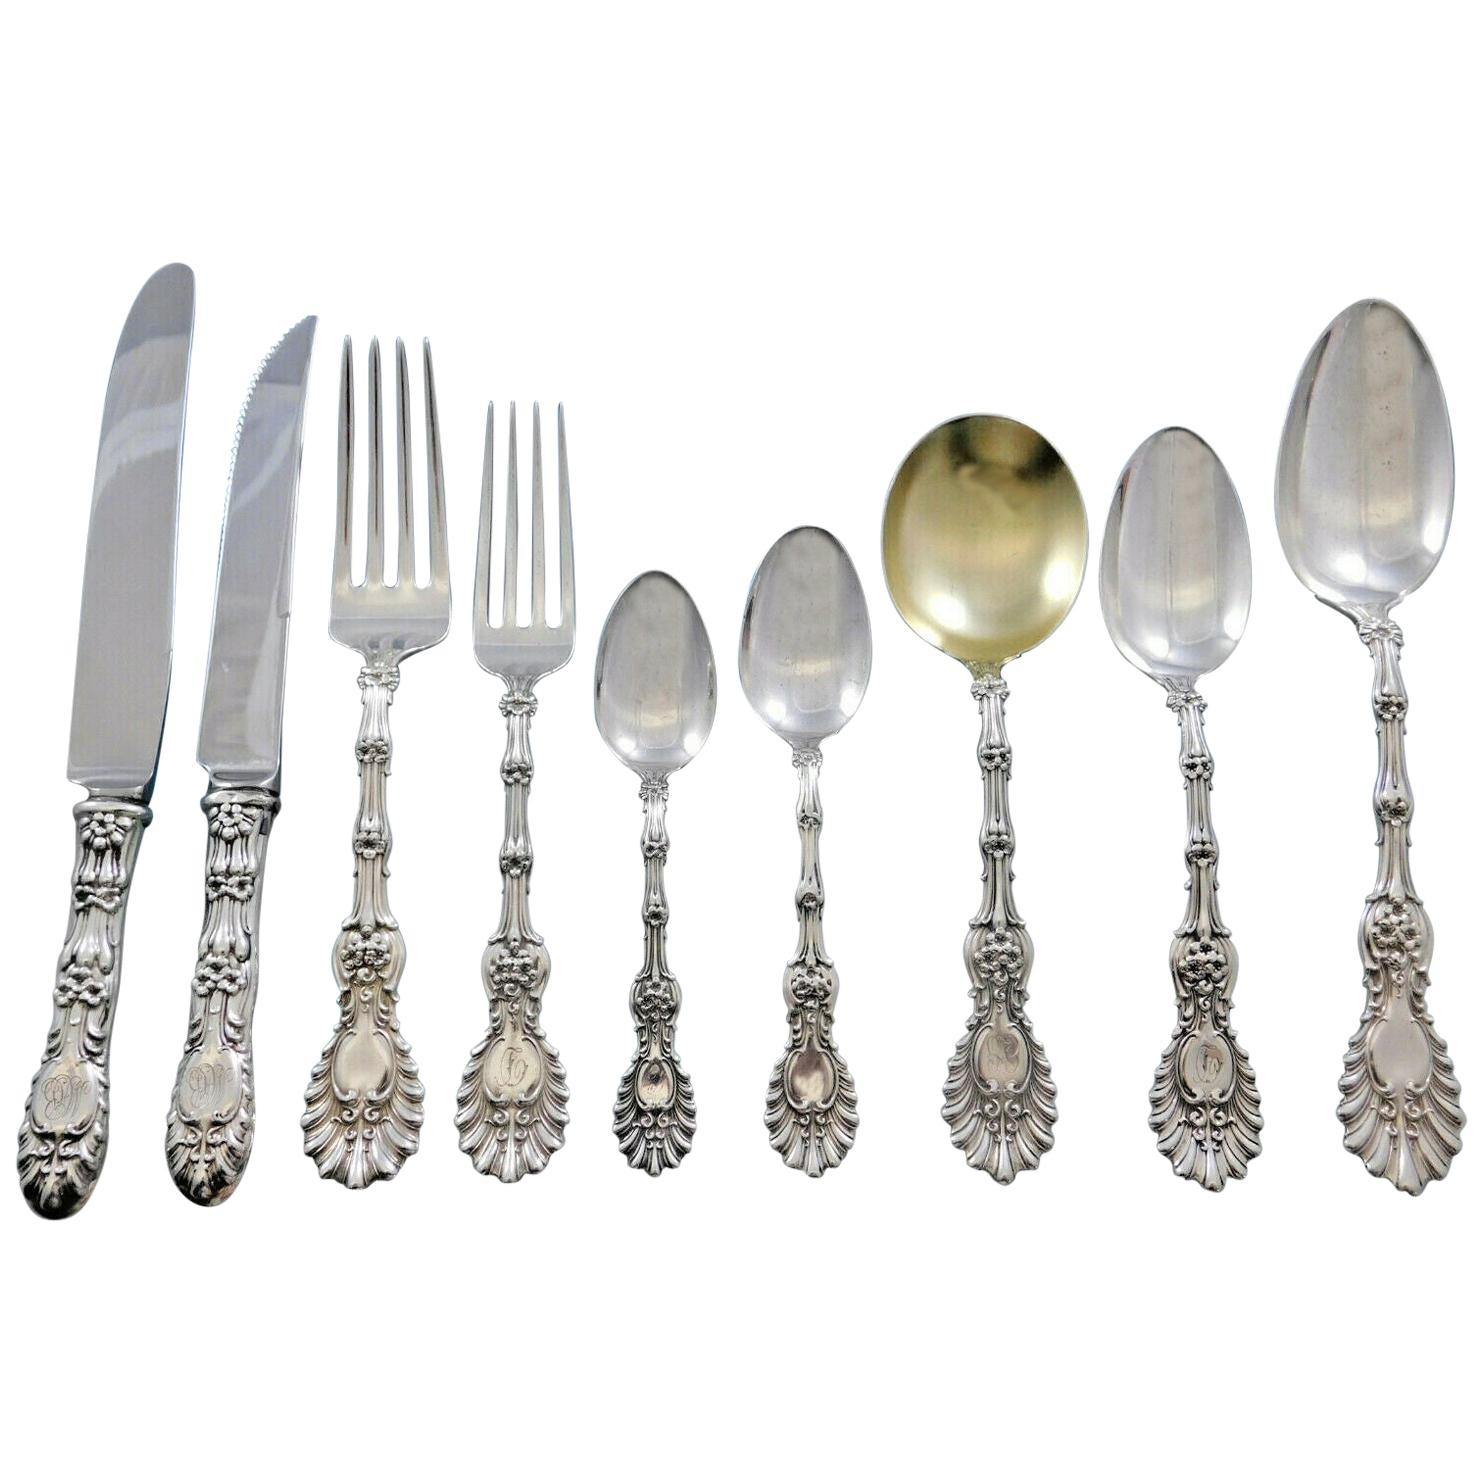 Radiant by Whiting Sterling Silver Flatware Set for 6 Service 63 Pieces